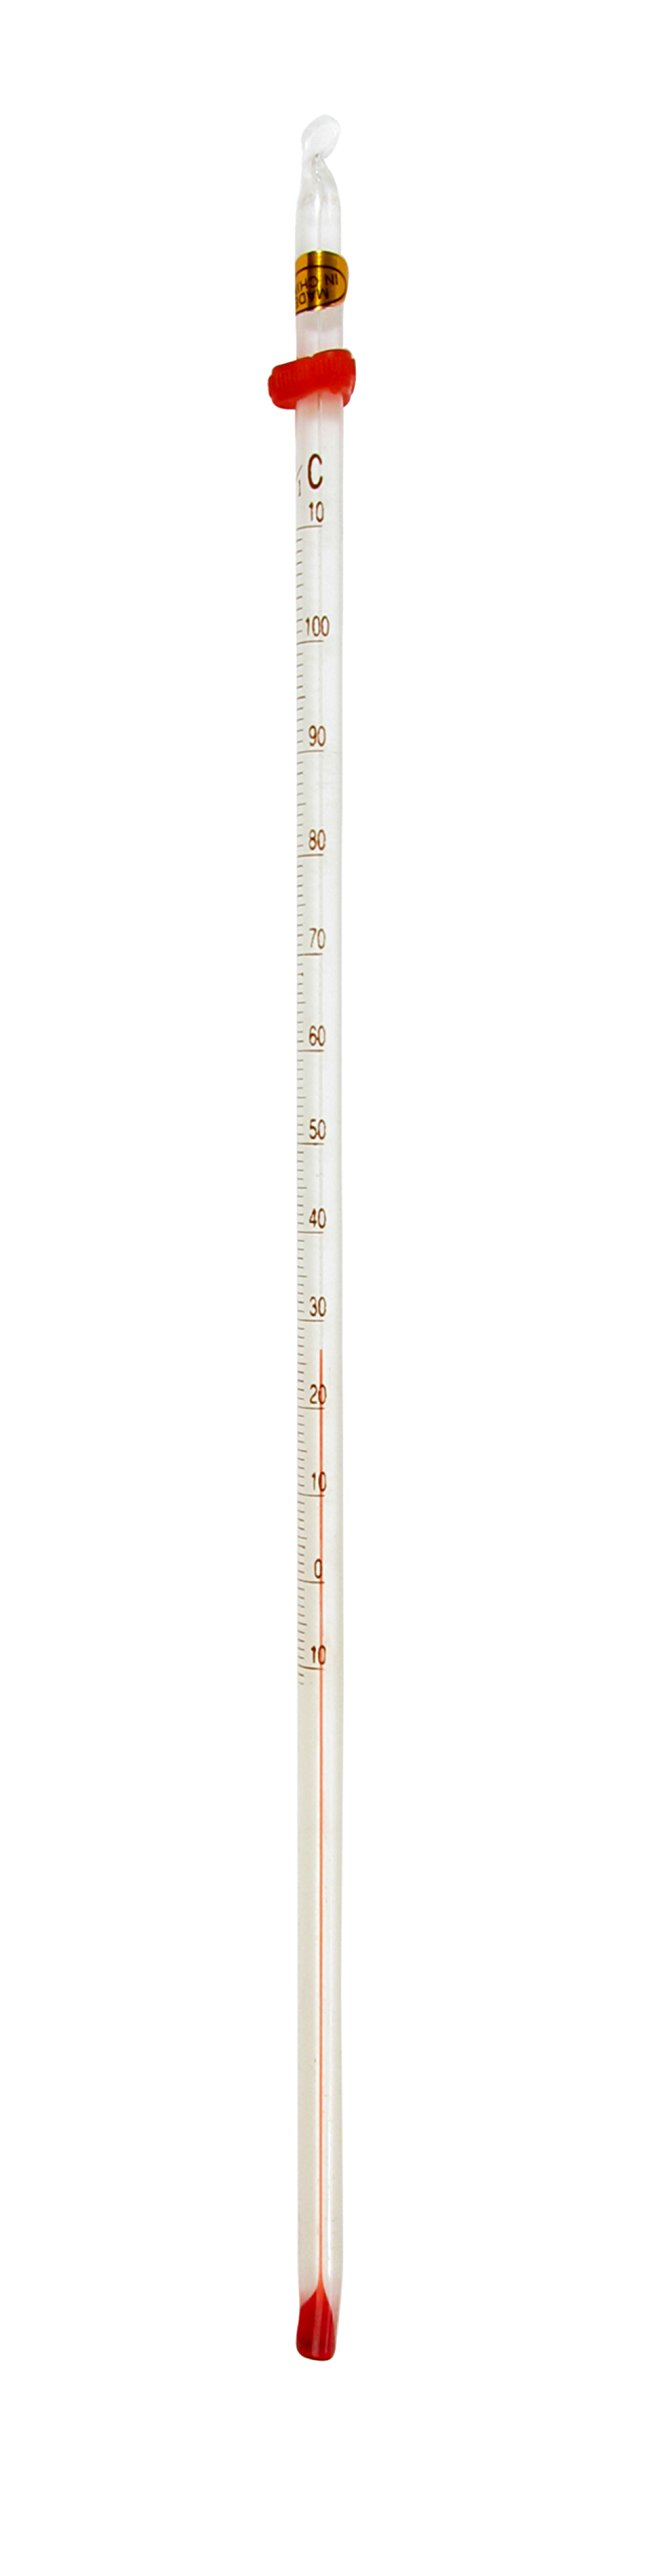 American Educational Partial Immersion Red Alcohol Single Scale Thermometer with White Back, -10 to +110 Degrees C, 300mm Length (Bundle of Five) by American Educational Products